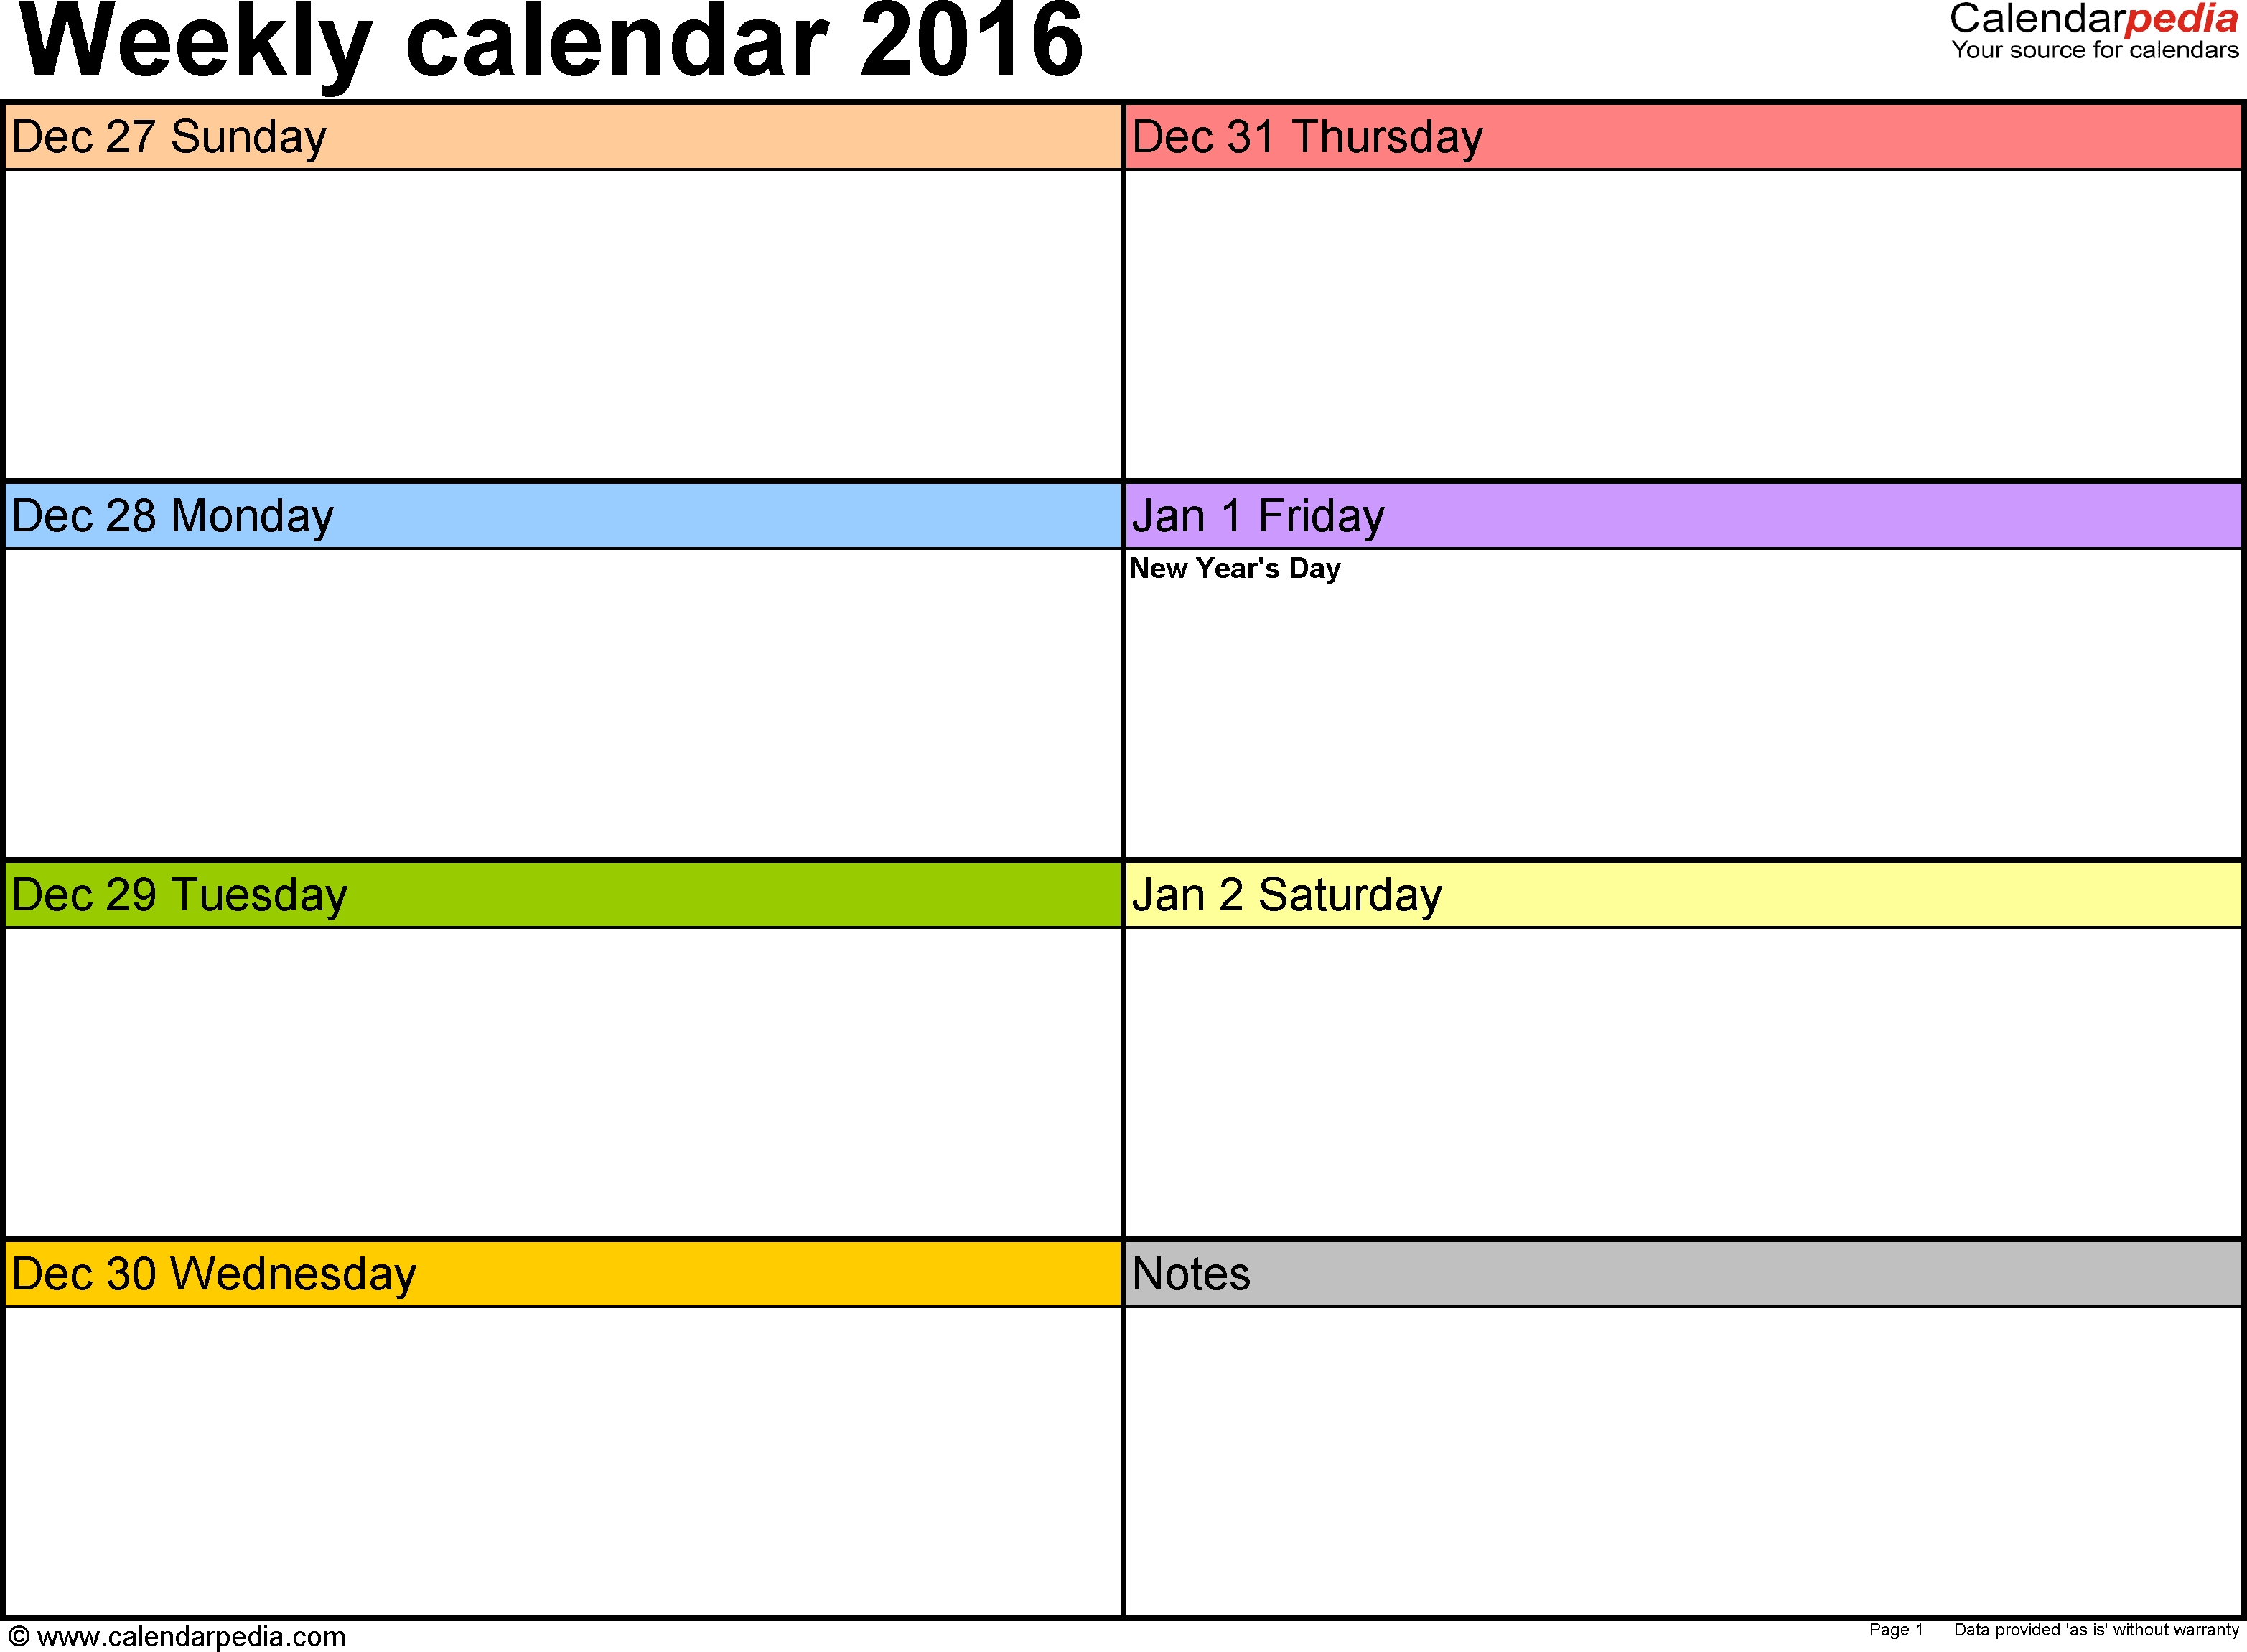 Weekly Calendar 2016 For Word - 12 Free Printable Templates pertaining to Weekly Calandar Template Starting Monday